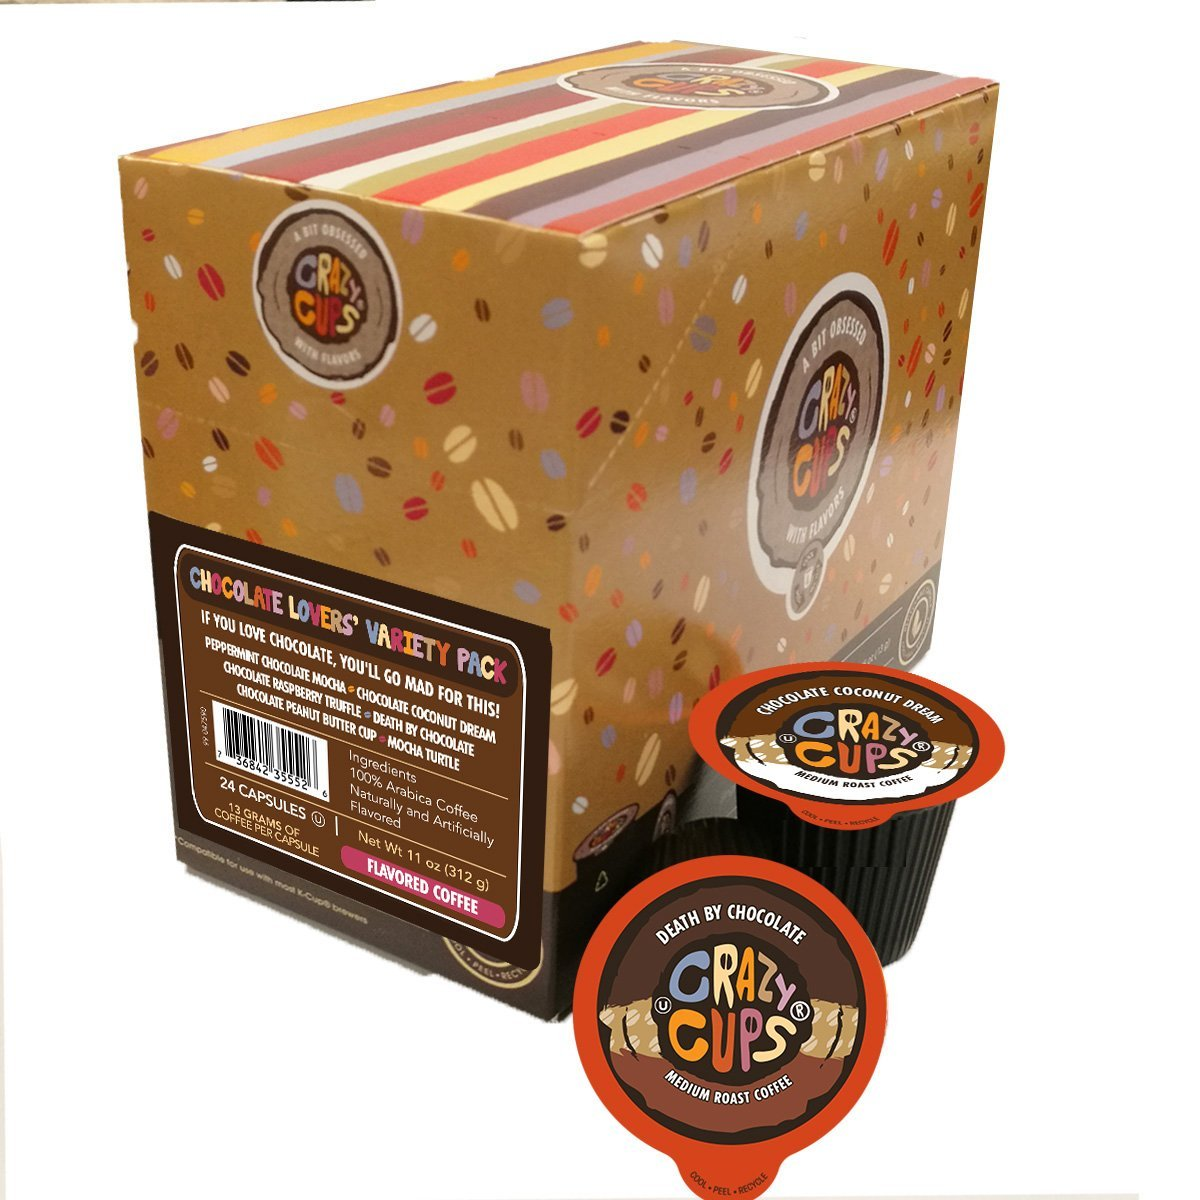 Crazy-Cups-Chocolate-Lovers-039-Flavored-Coffee-Variety-Pack-Sampler-24-ct thumbnail 4